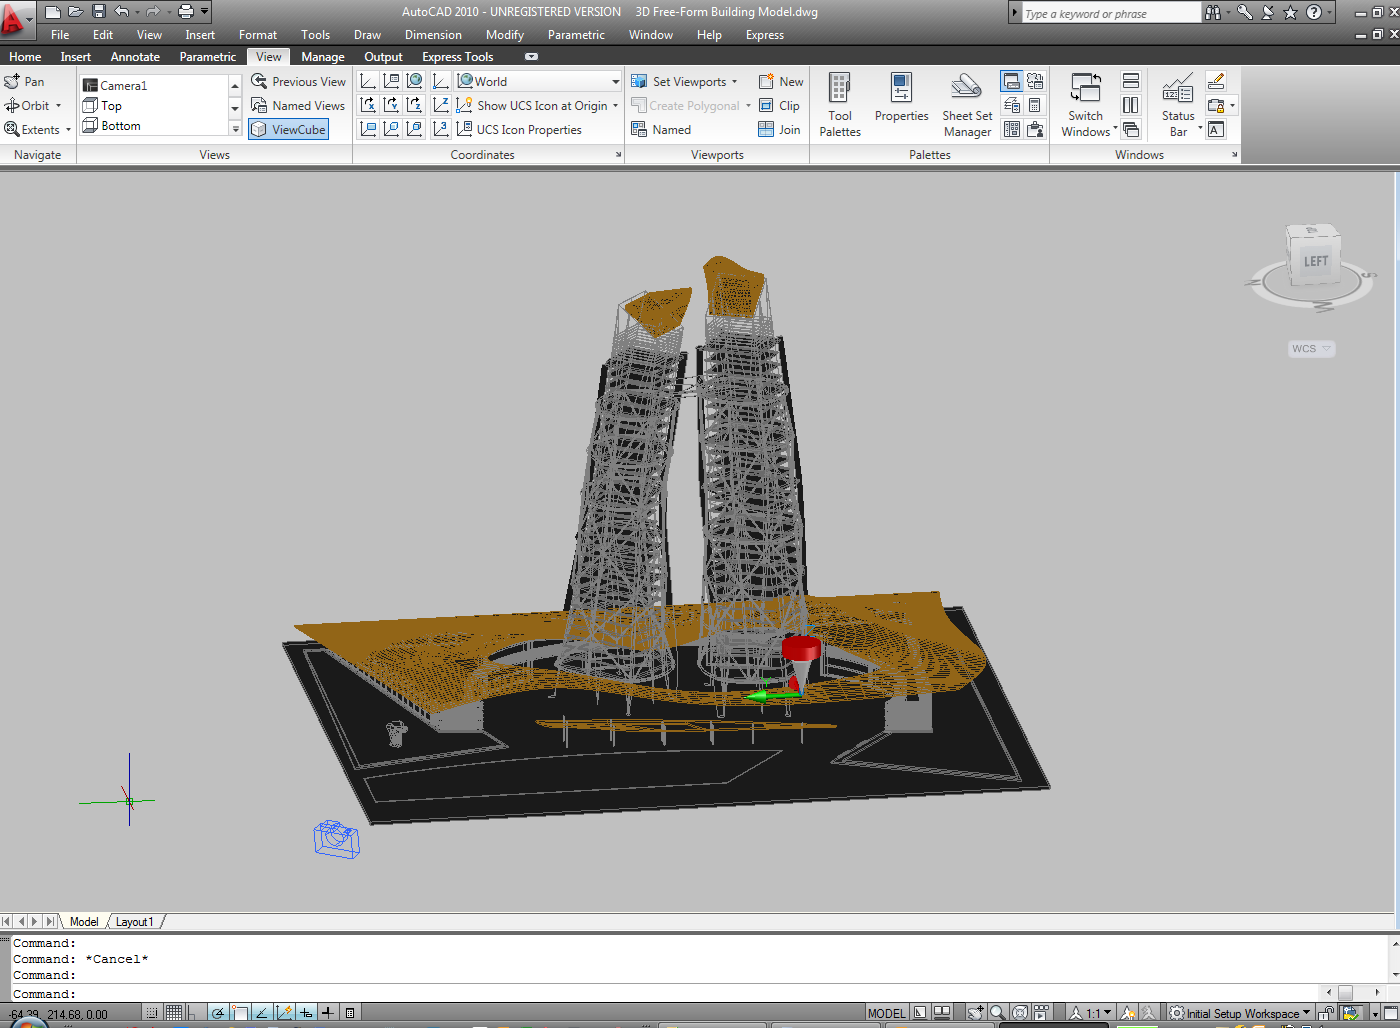 Download AutoCAD 2010 Full Version with crack